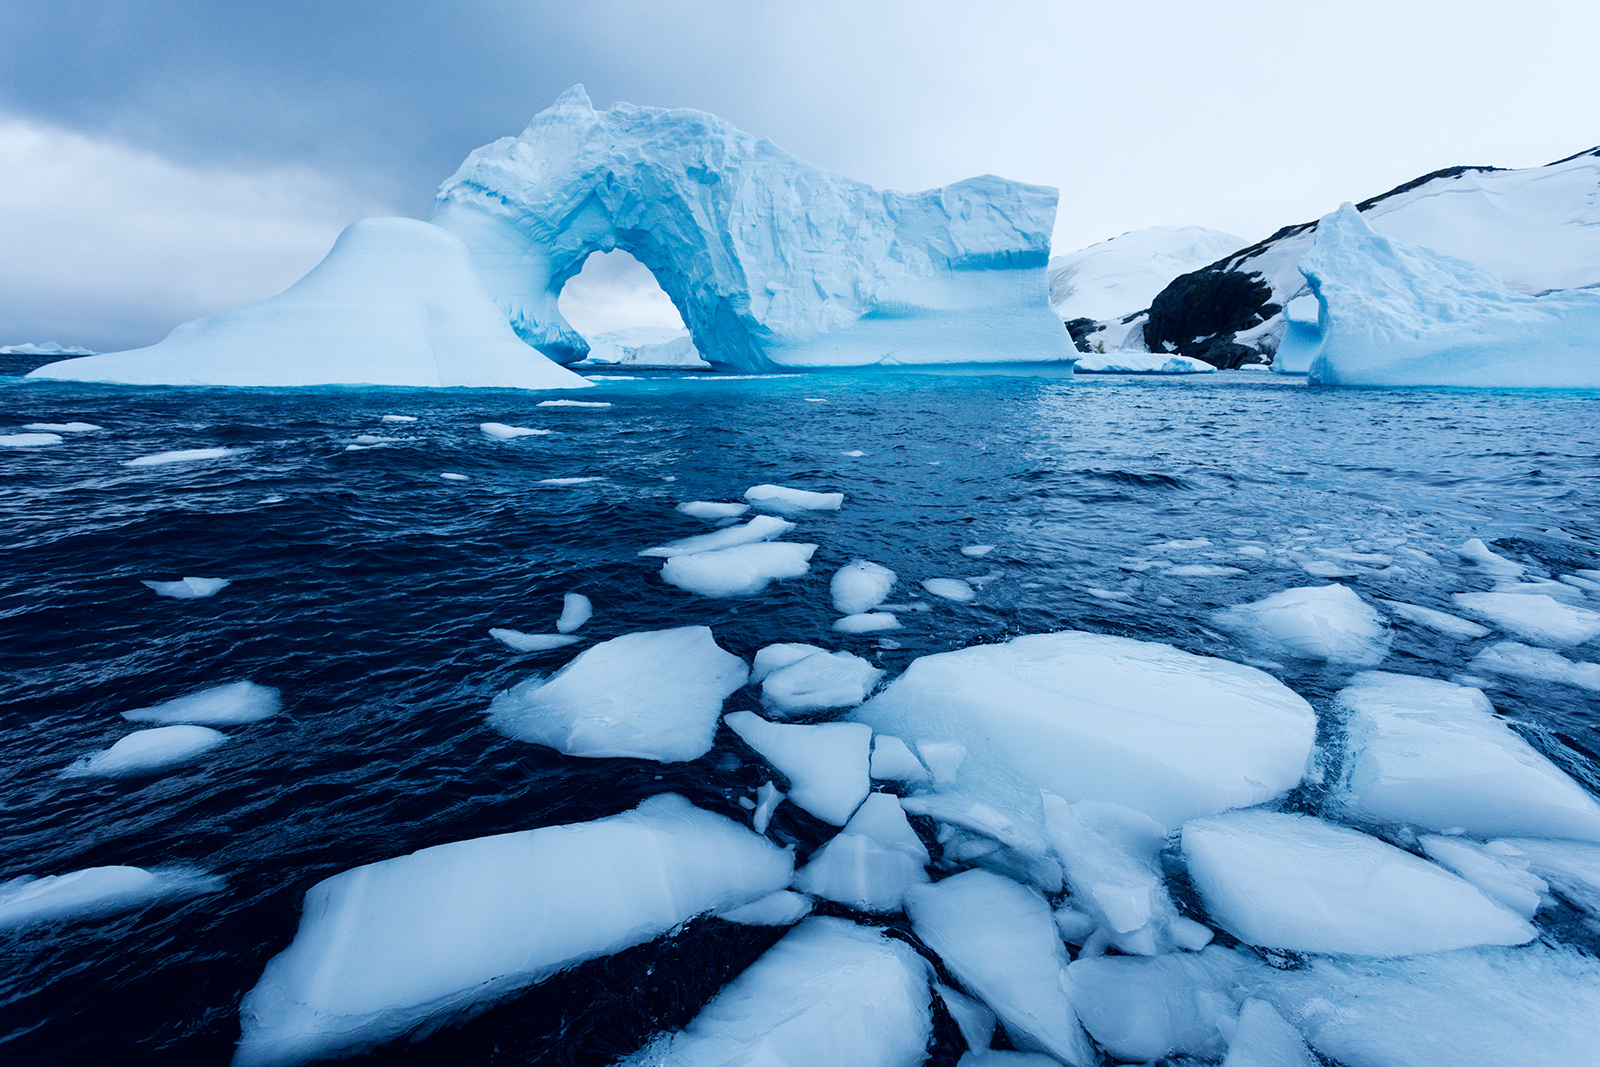 Icebergs Can Be Green, Black, And Even Rainbow - Scientific American